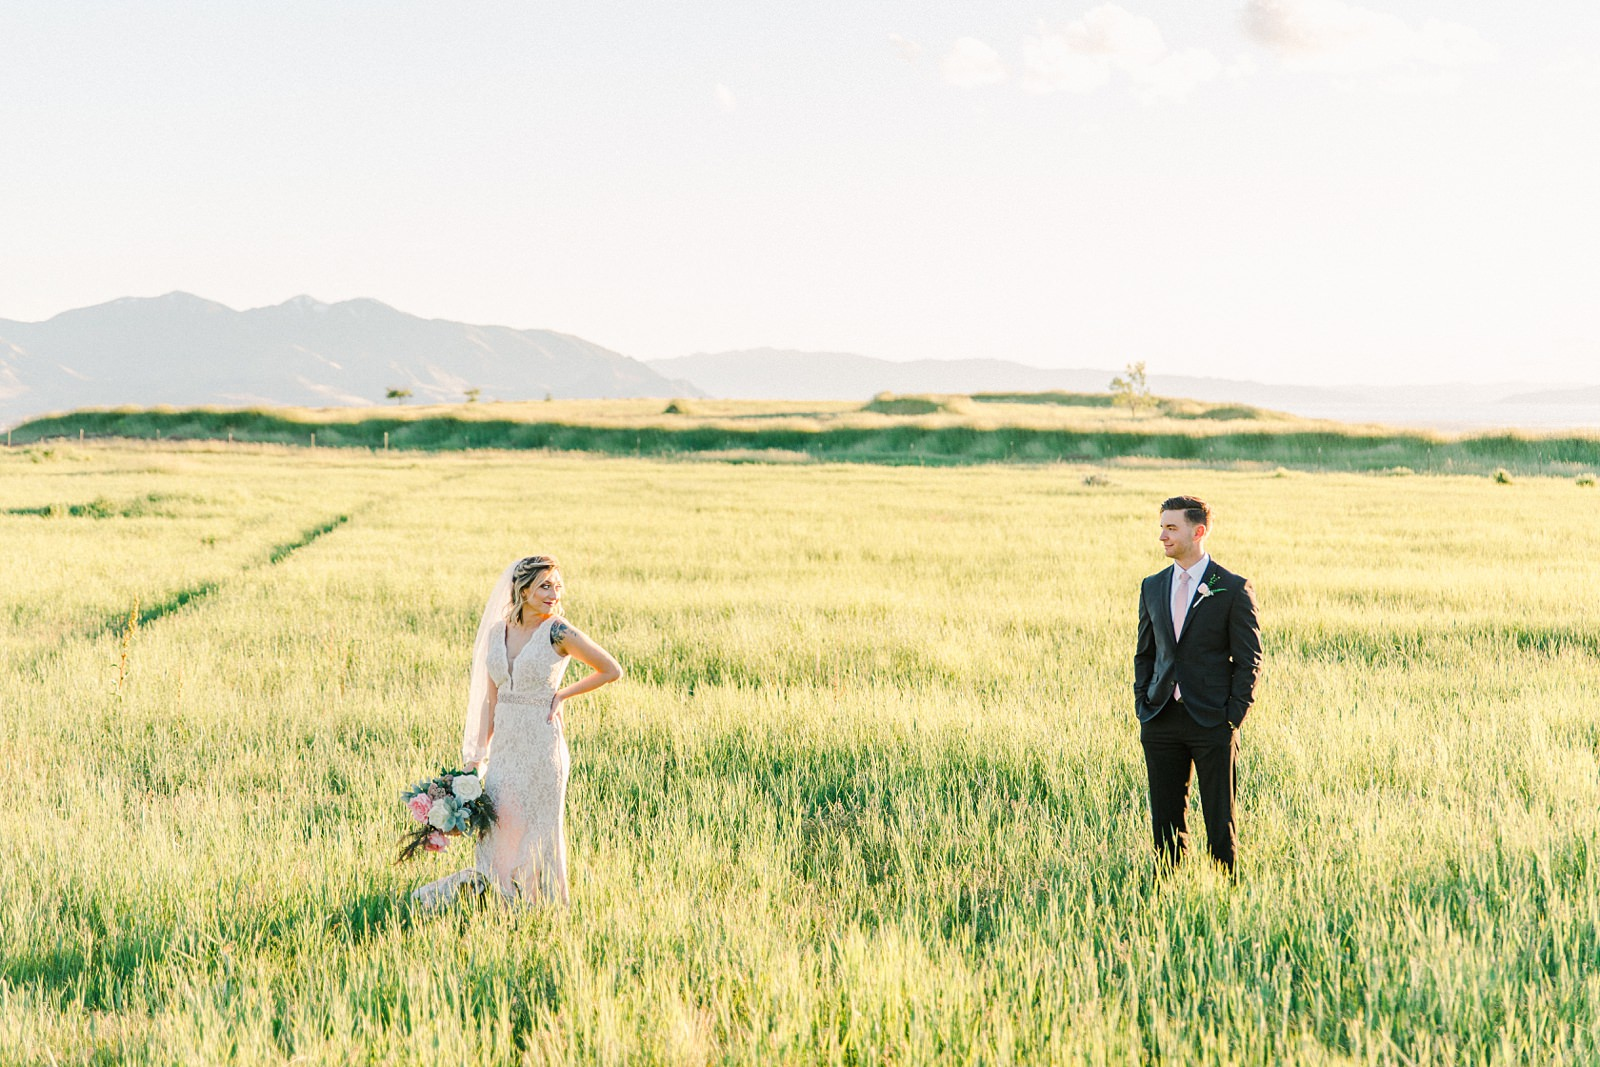 Salt Lake City Utah Bridal Wedding Photography, Tunnel Springs Park, bride and groom in open golden field